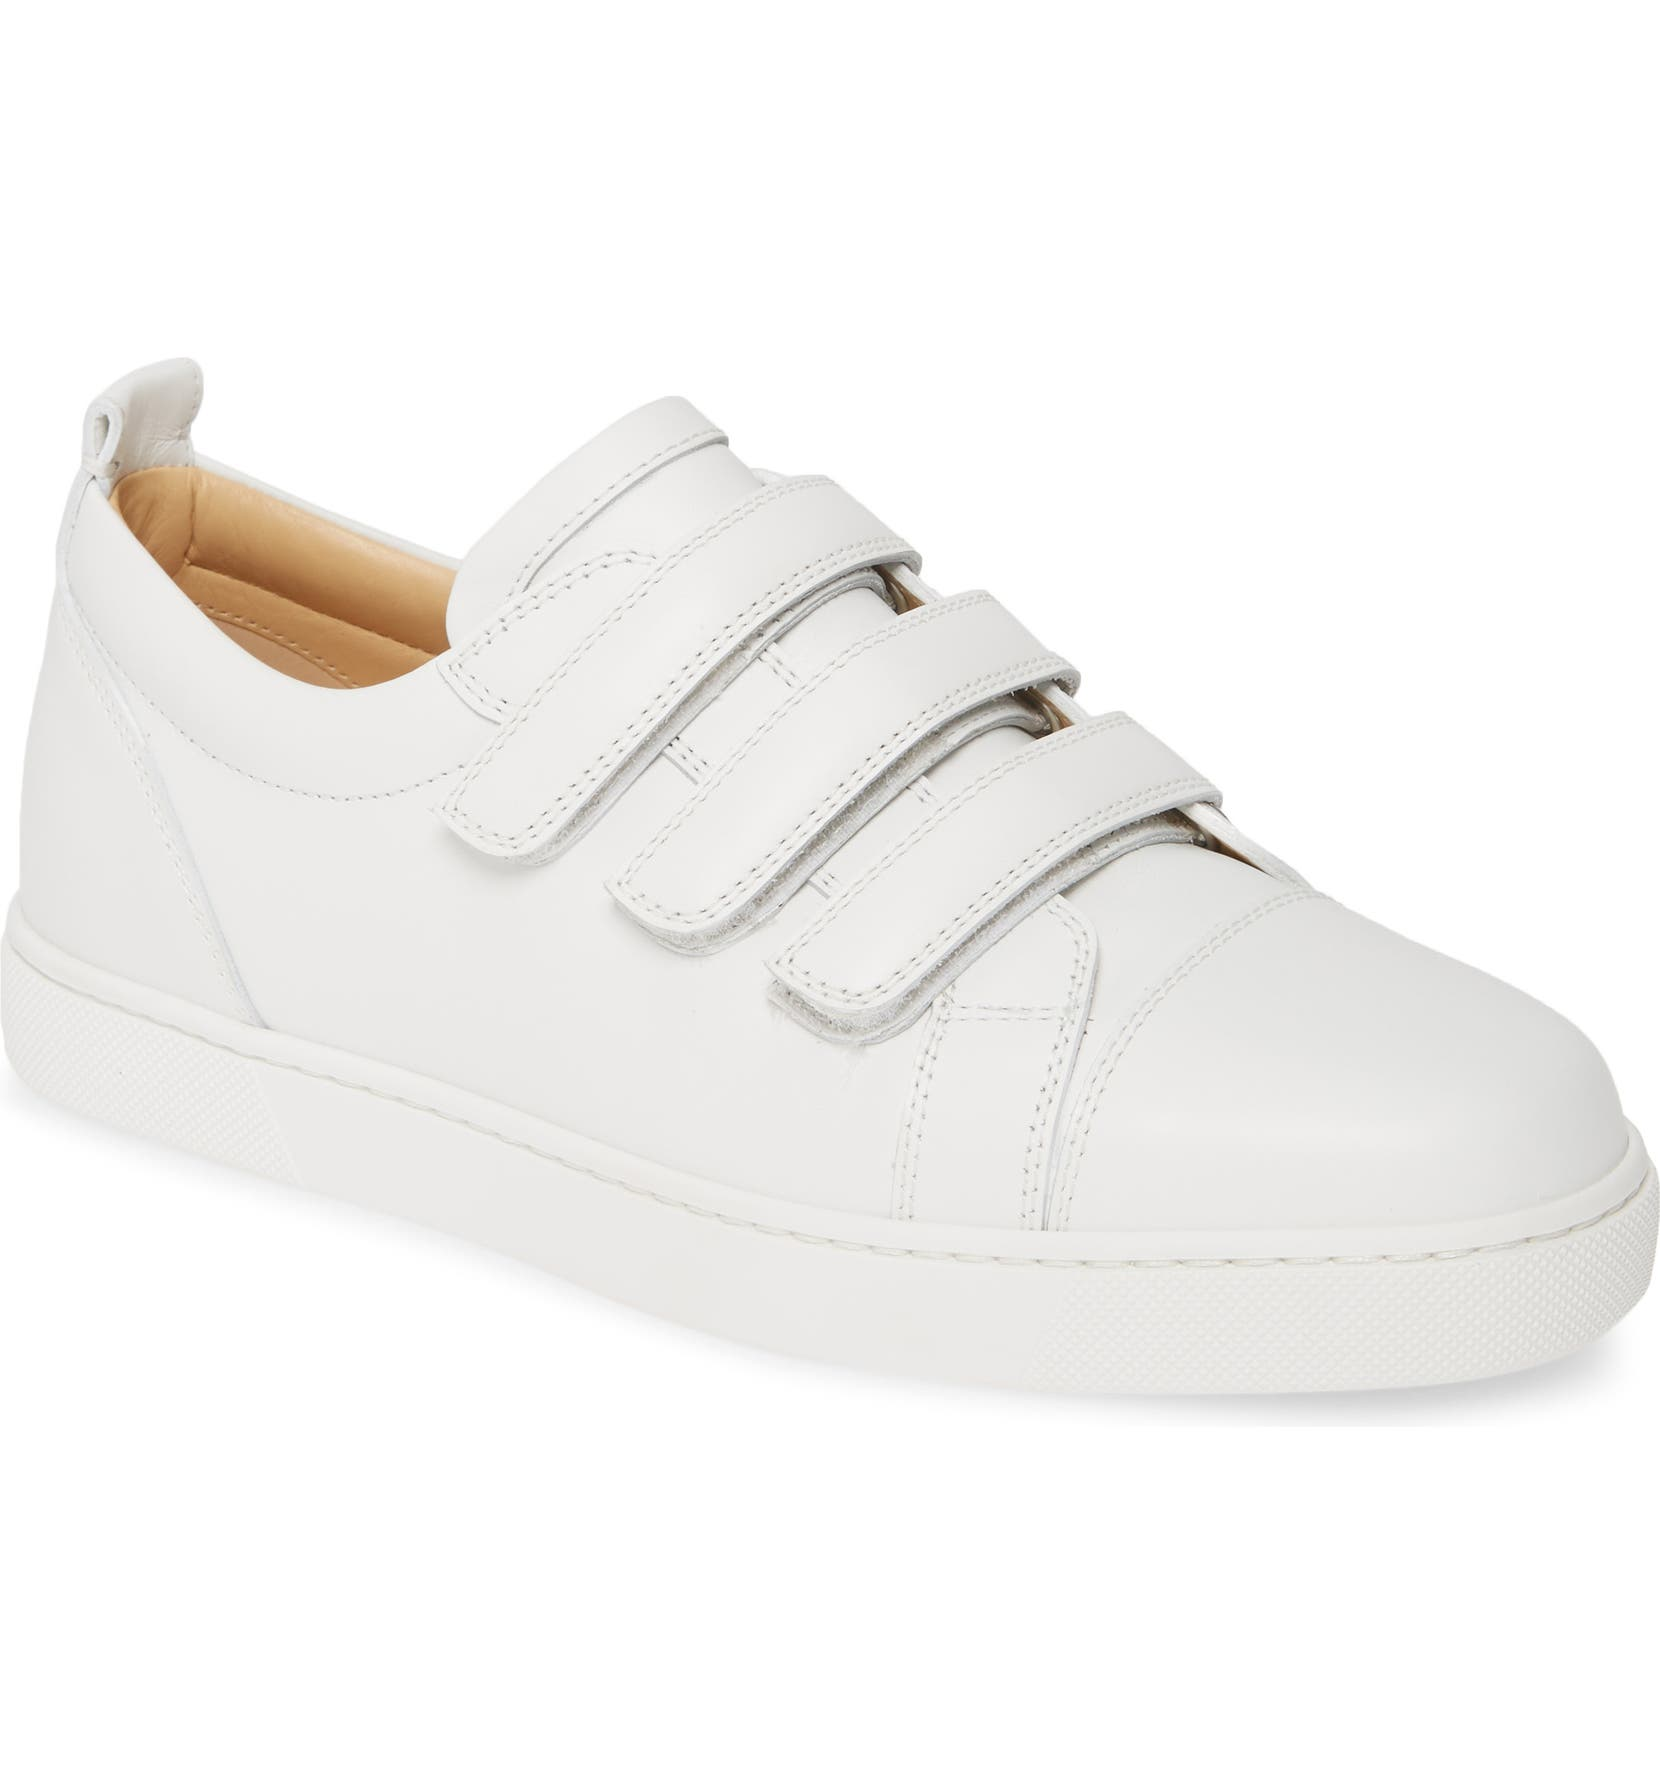 Kiddo Three Louboutin Strap Donna Leather Christian SneakersNordstrom OwP0nk